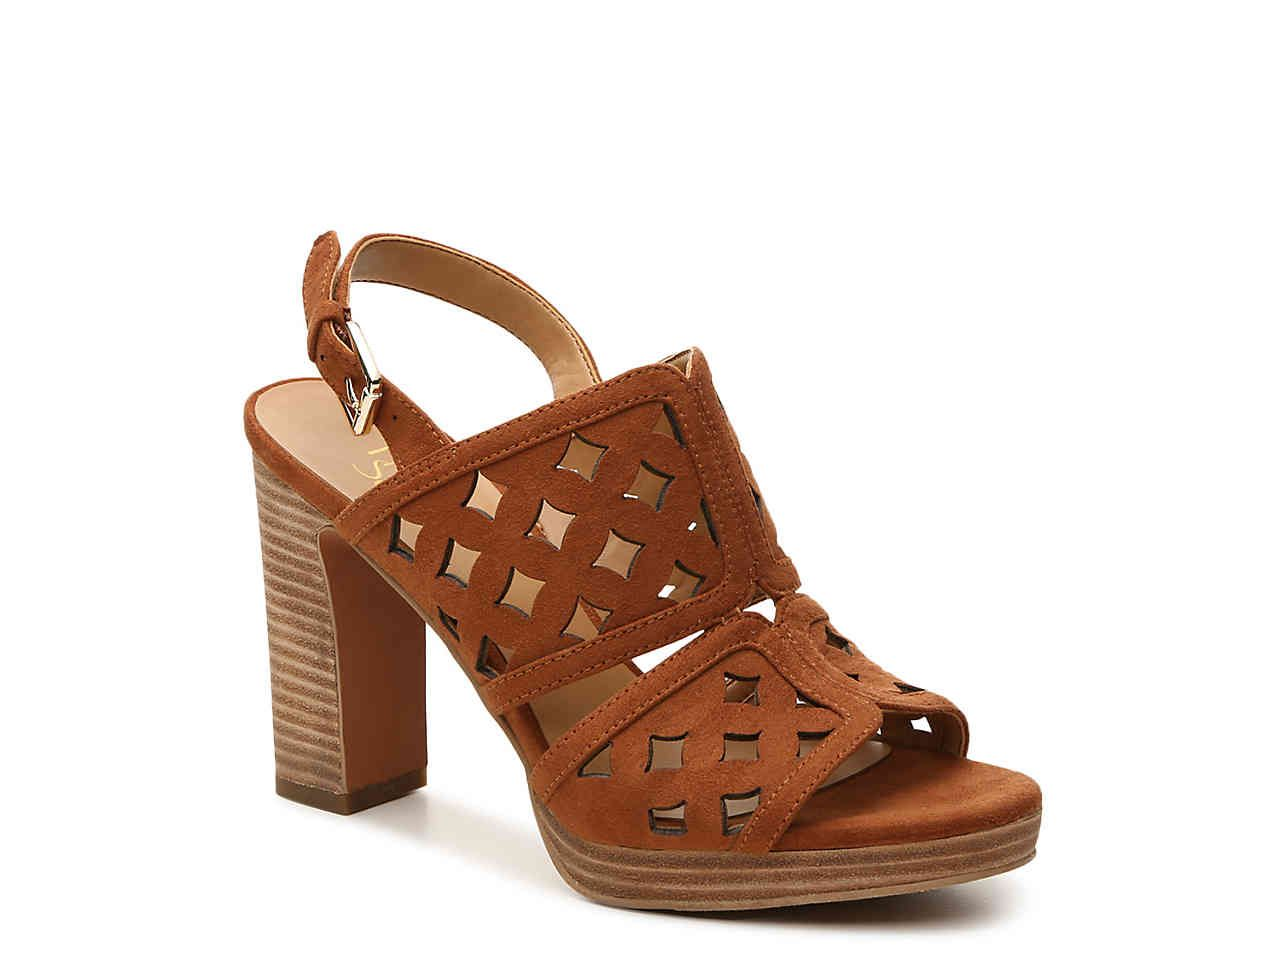 Tom Ford blade constrasting high heels strappy sandals